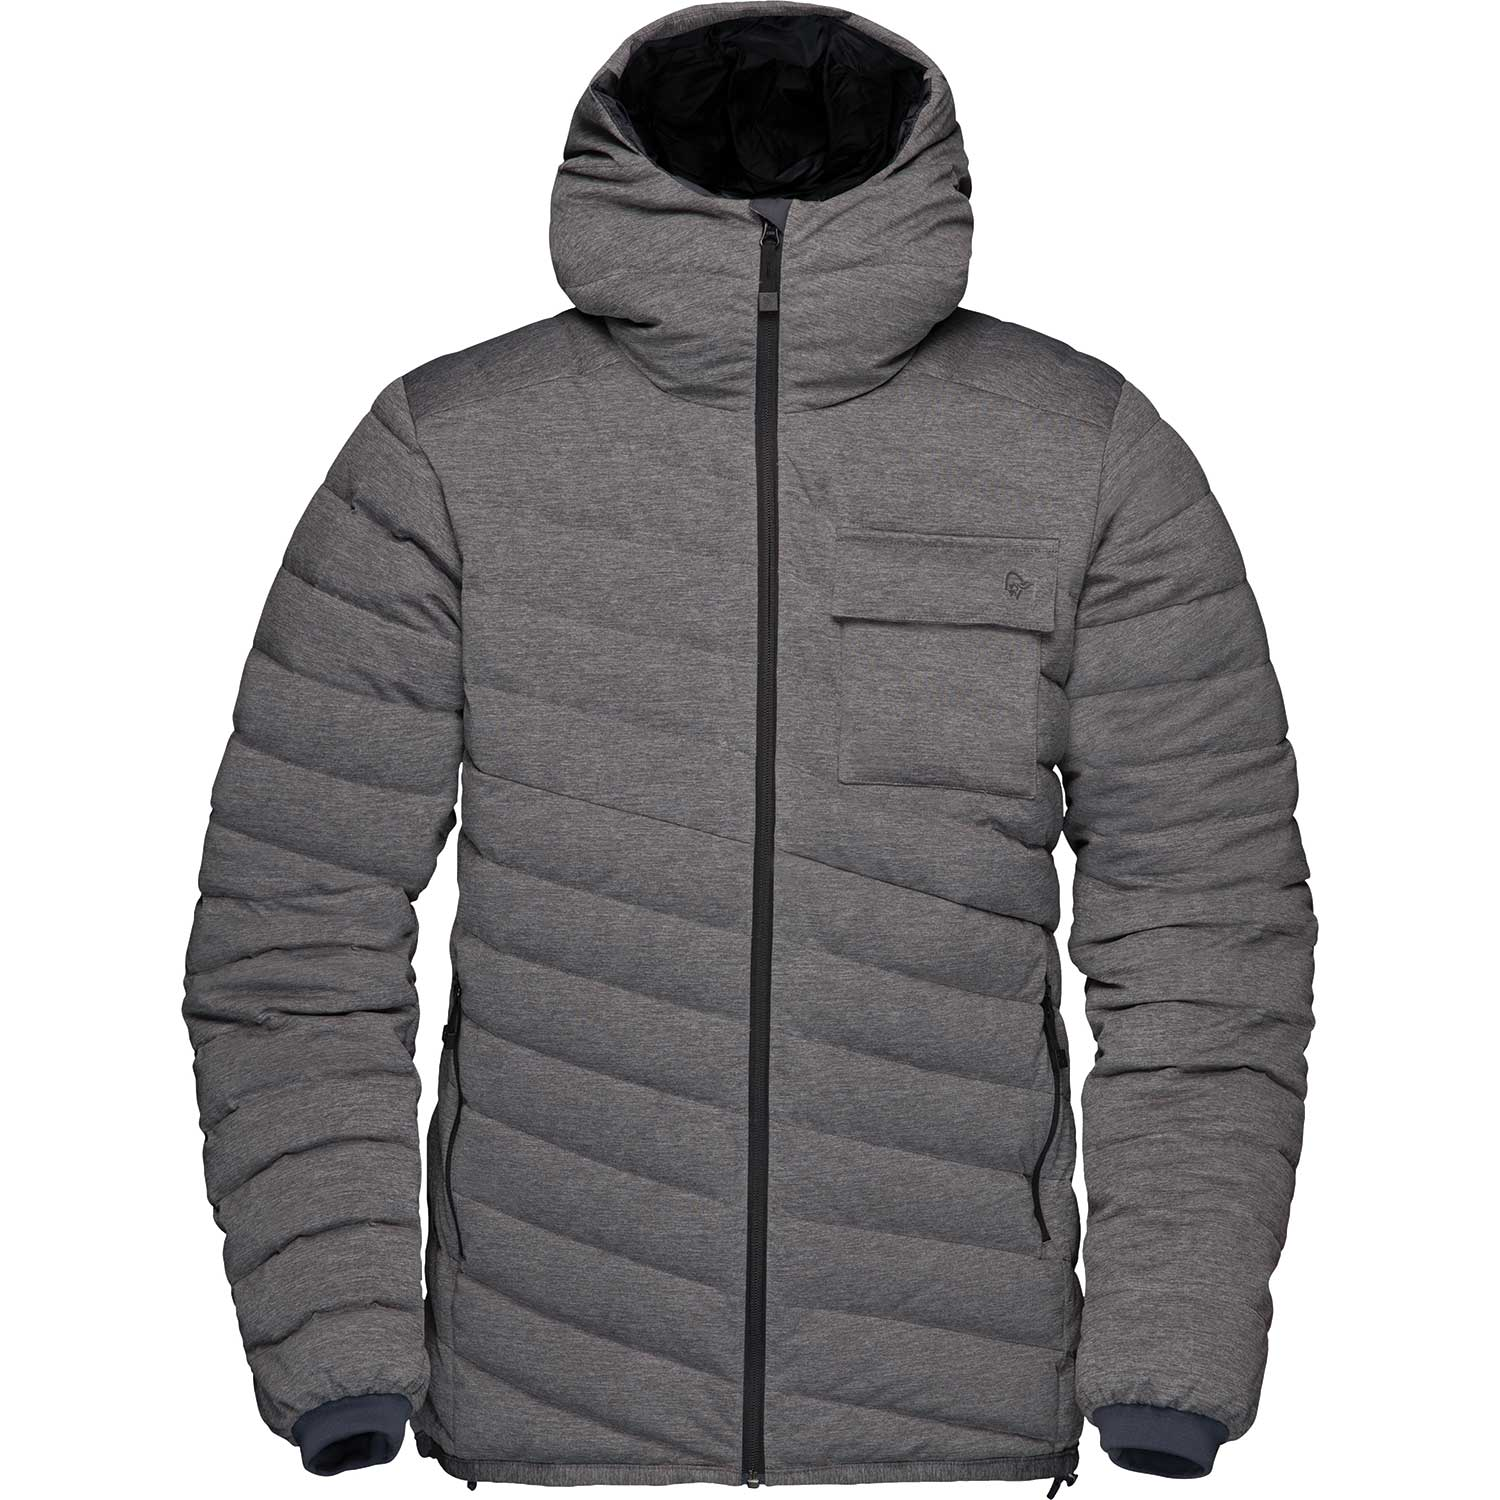 tamok lightweight down750 Jacket (M)